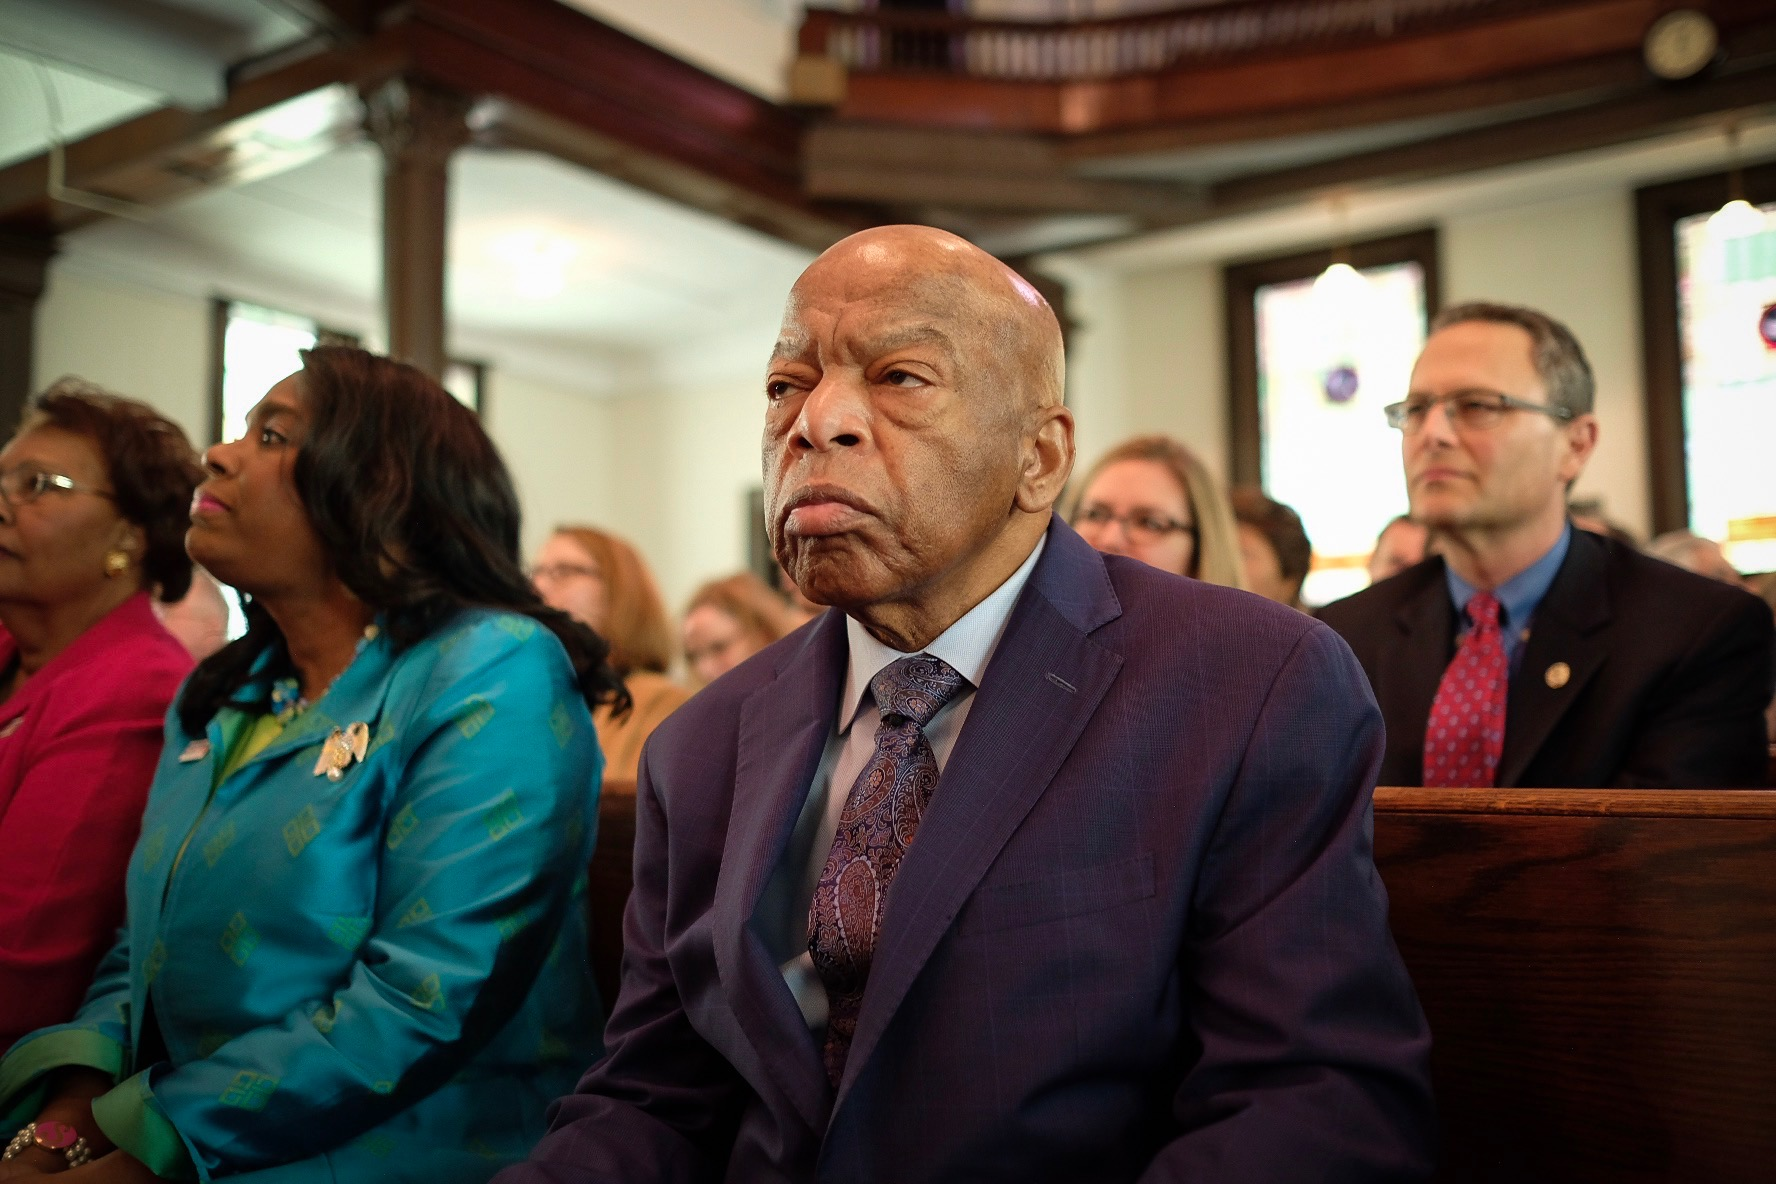 Remembering civil rights icon Rep. John Lewis